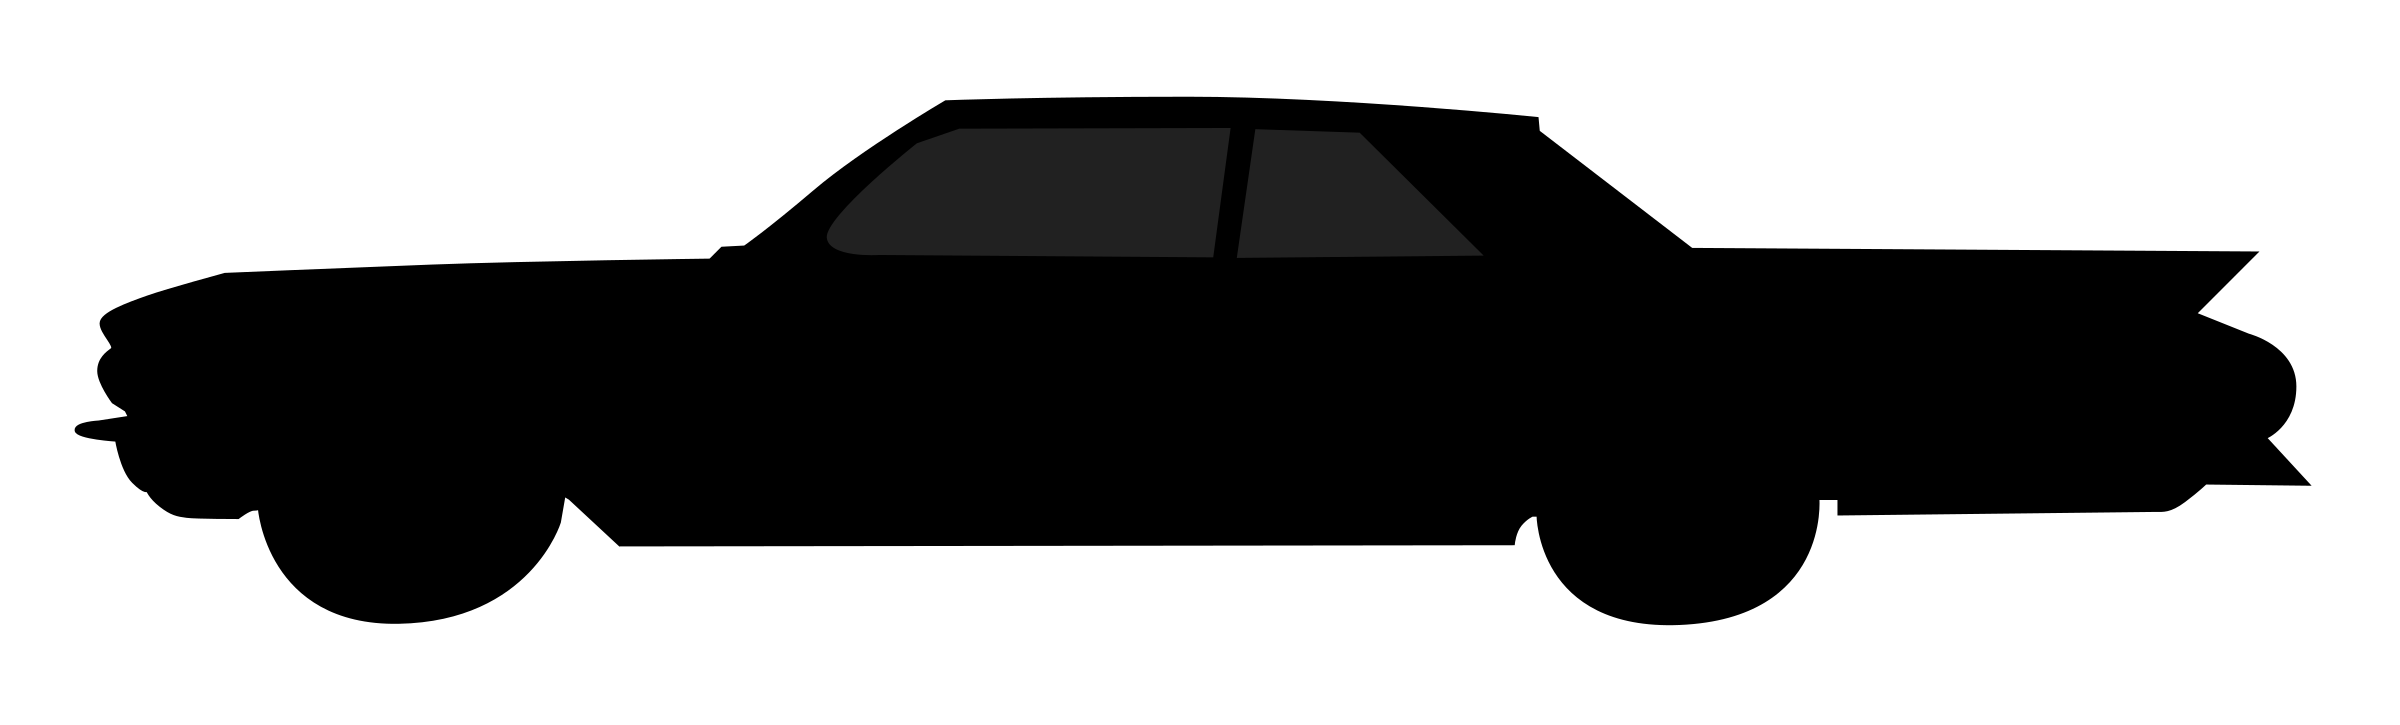 Clipart cars silhouette. Old car big image